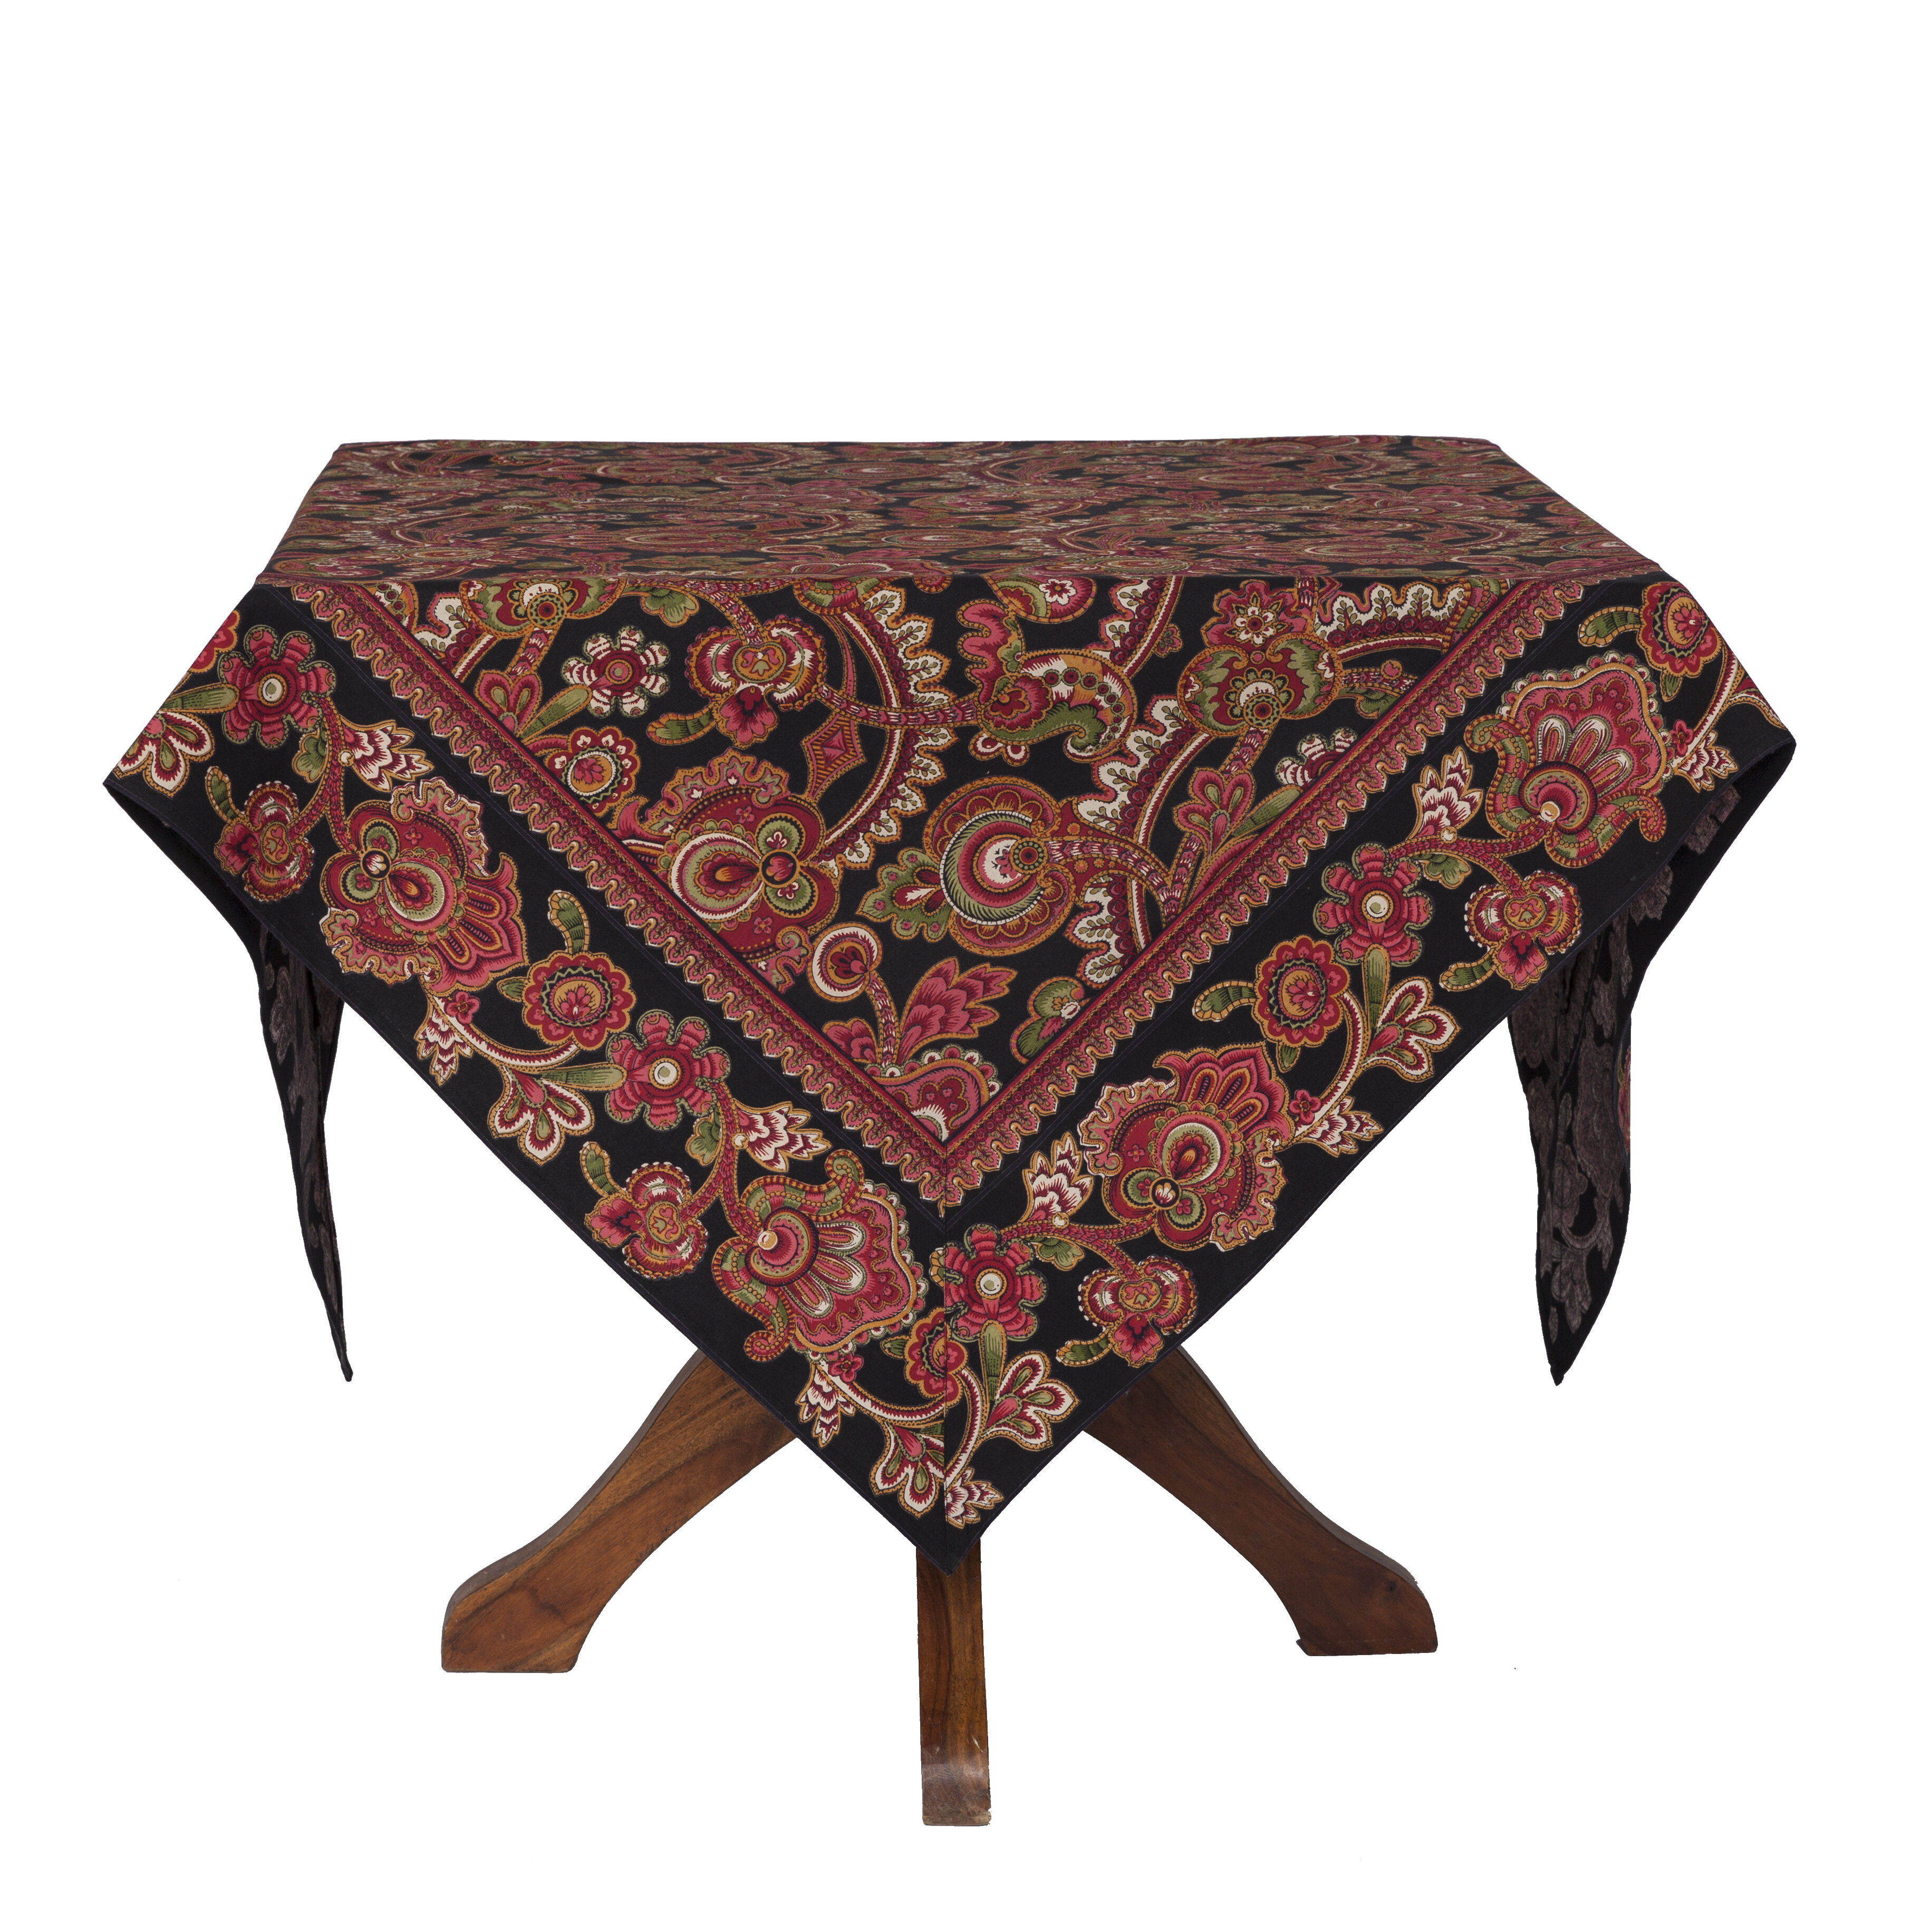 Darby Home Co Weese Paisley Tablecloth Reviews Wayfair